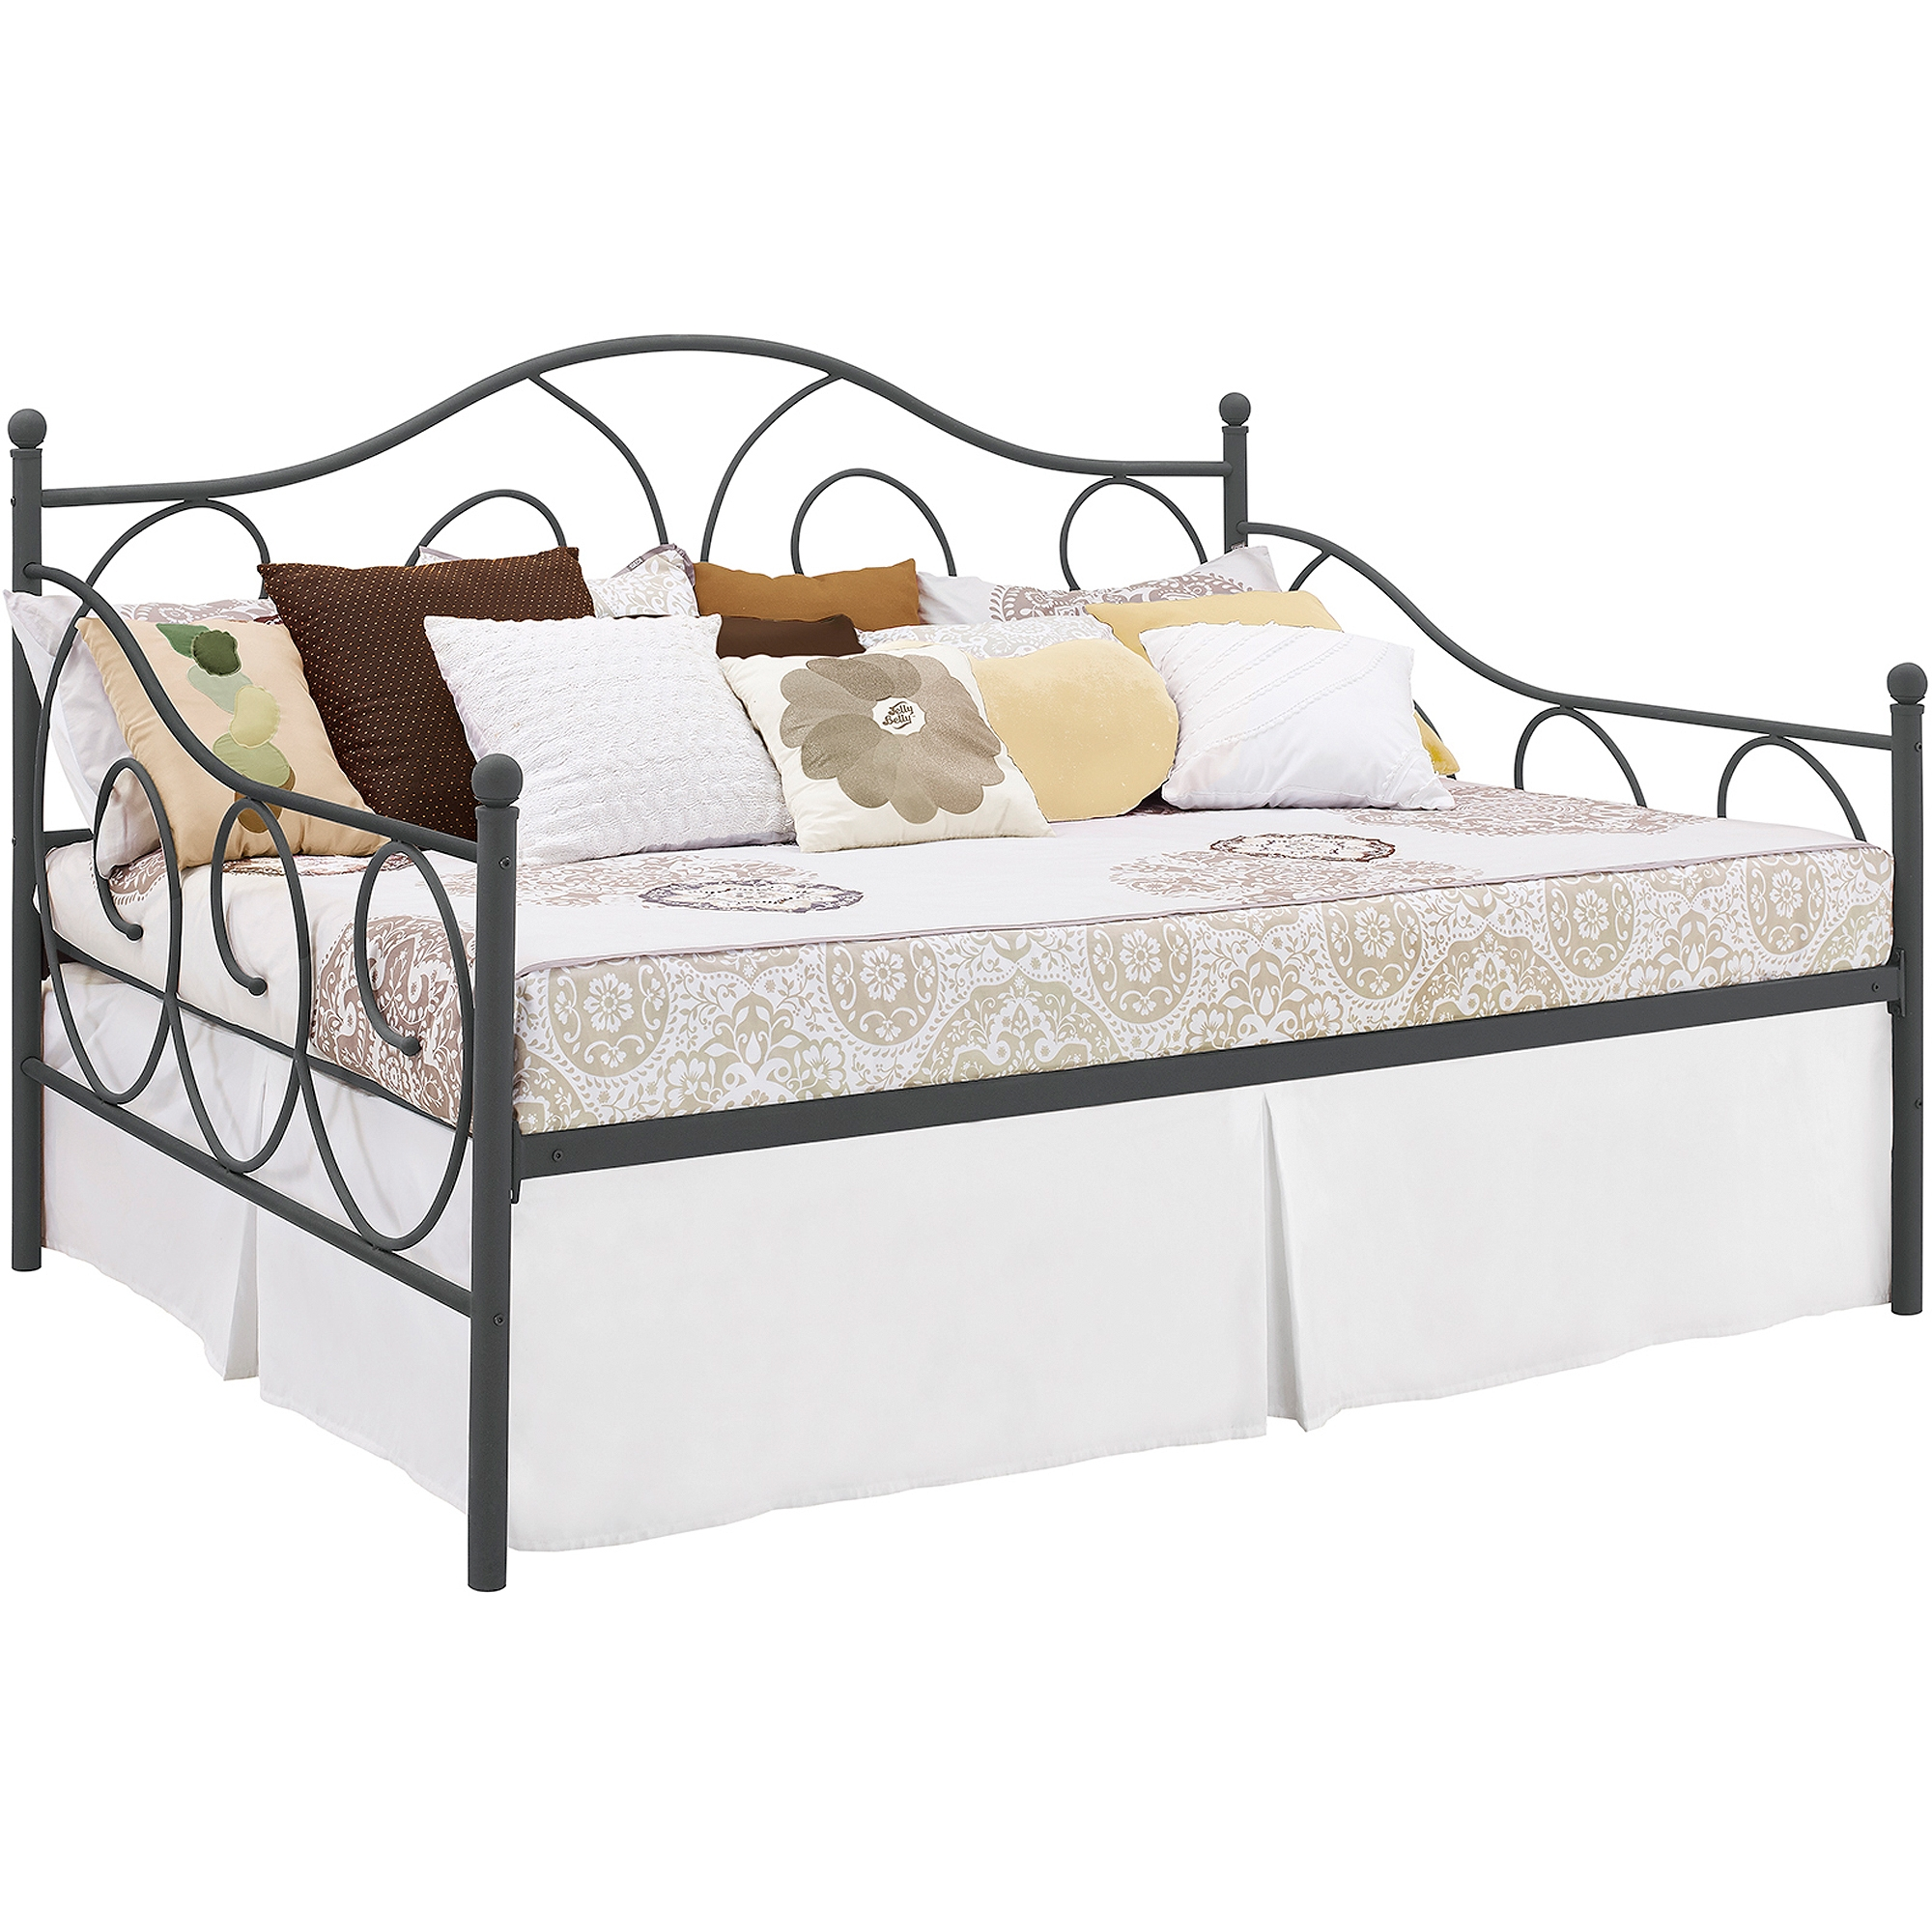 Full Size Metal Trundle Bed Frame